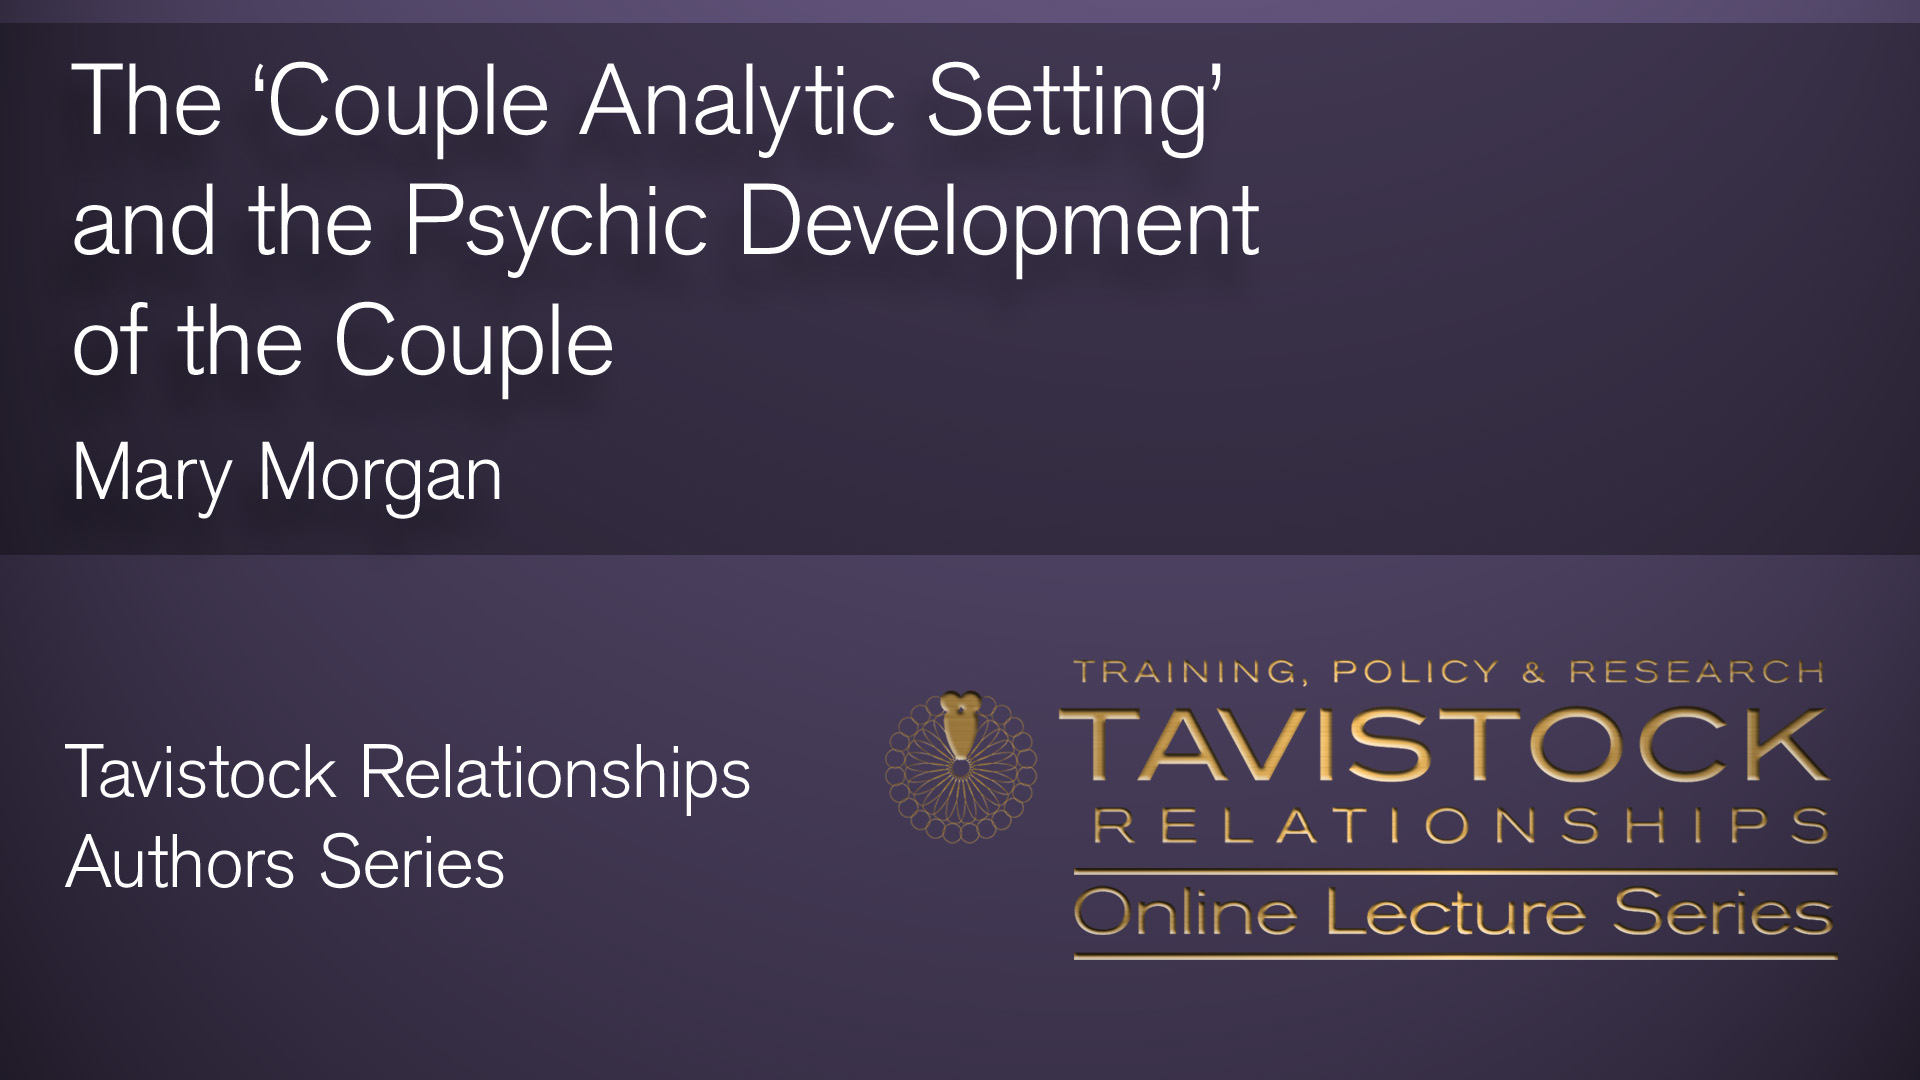 The Couple Analytic Setting and the Psychic Development of the Couple Video